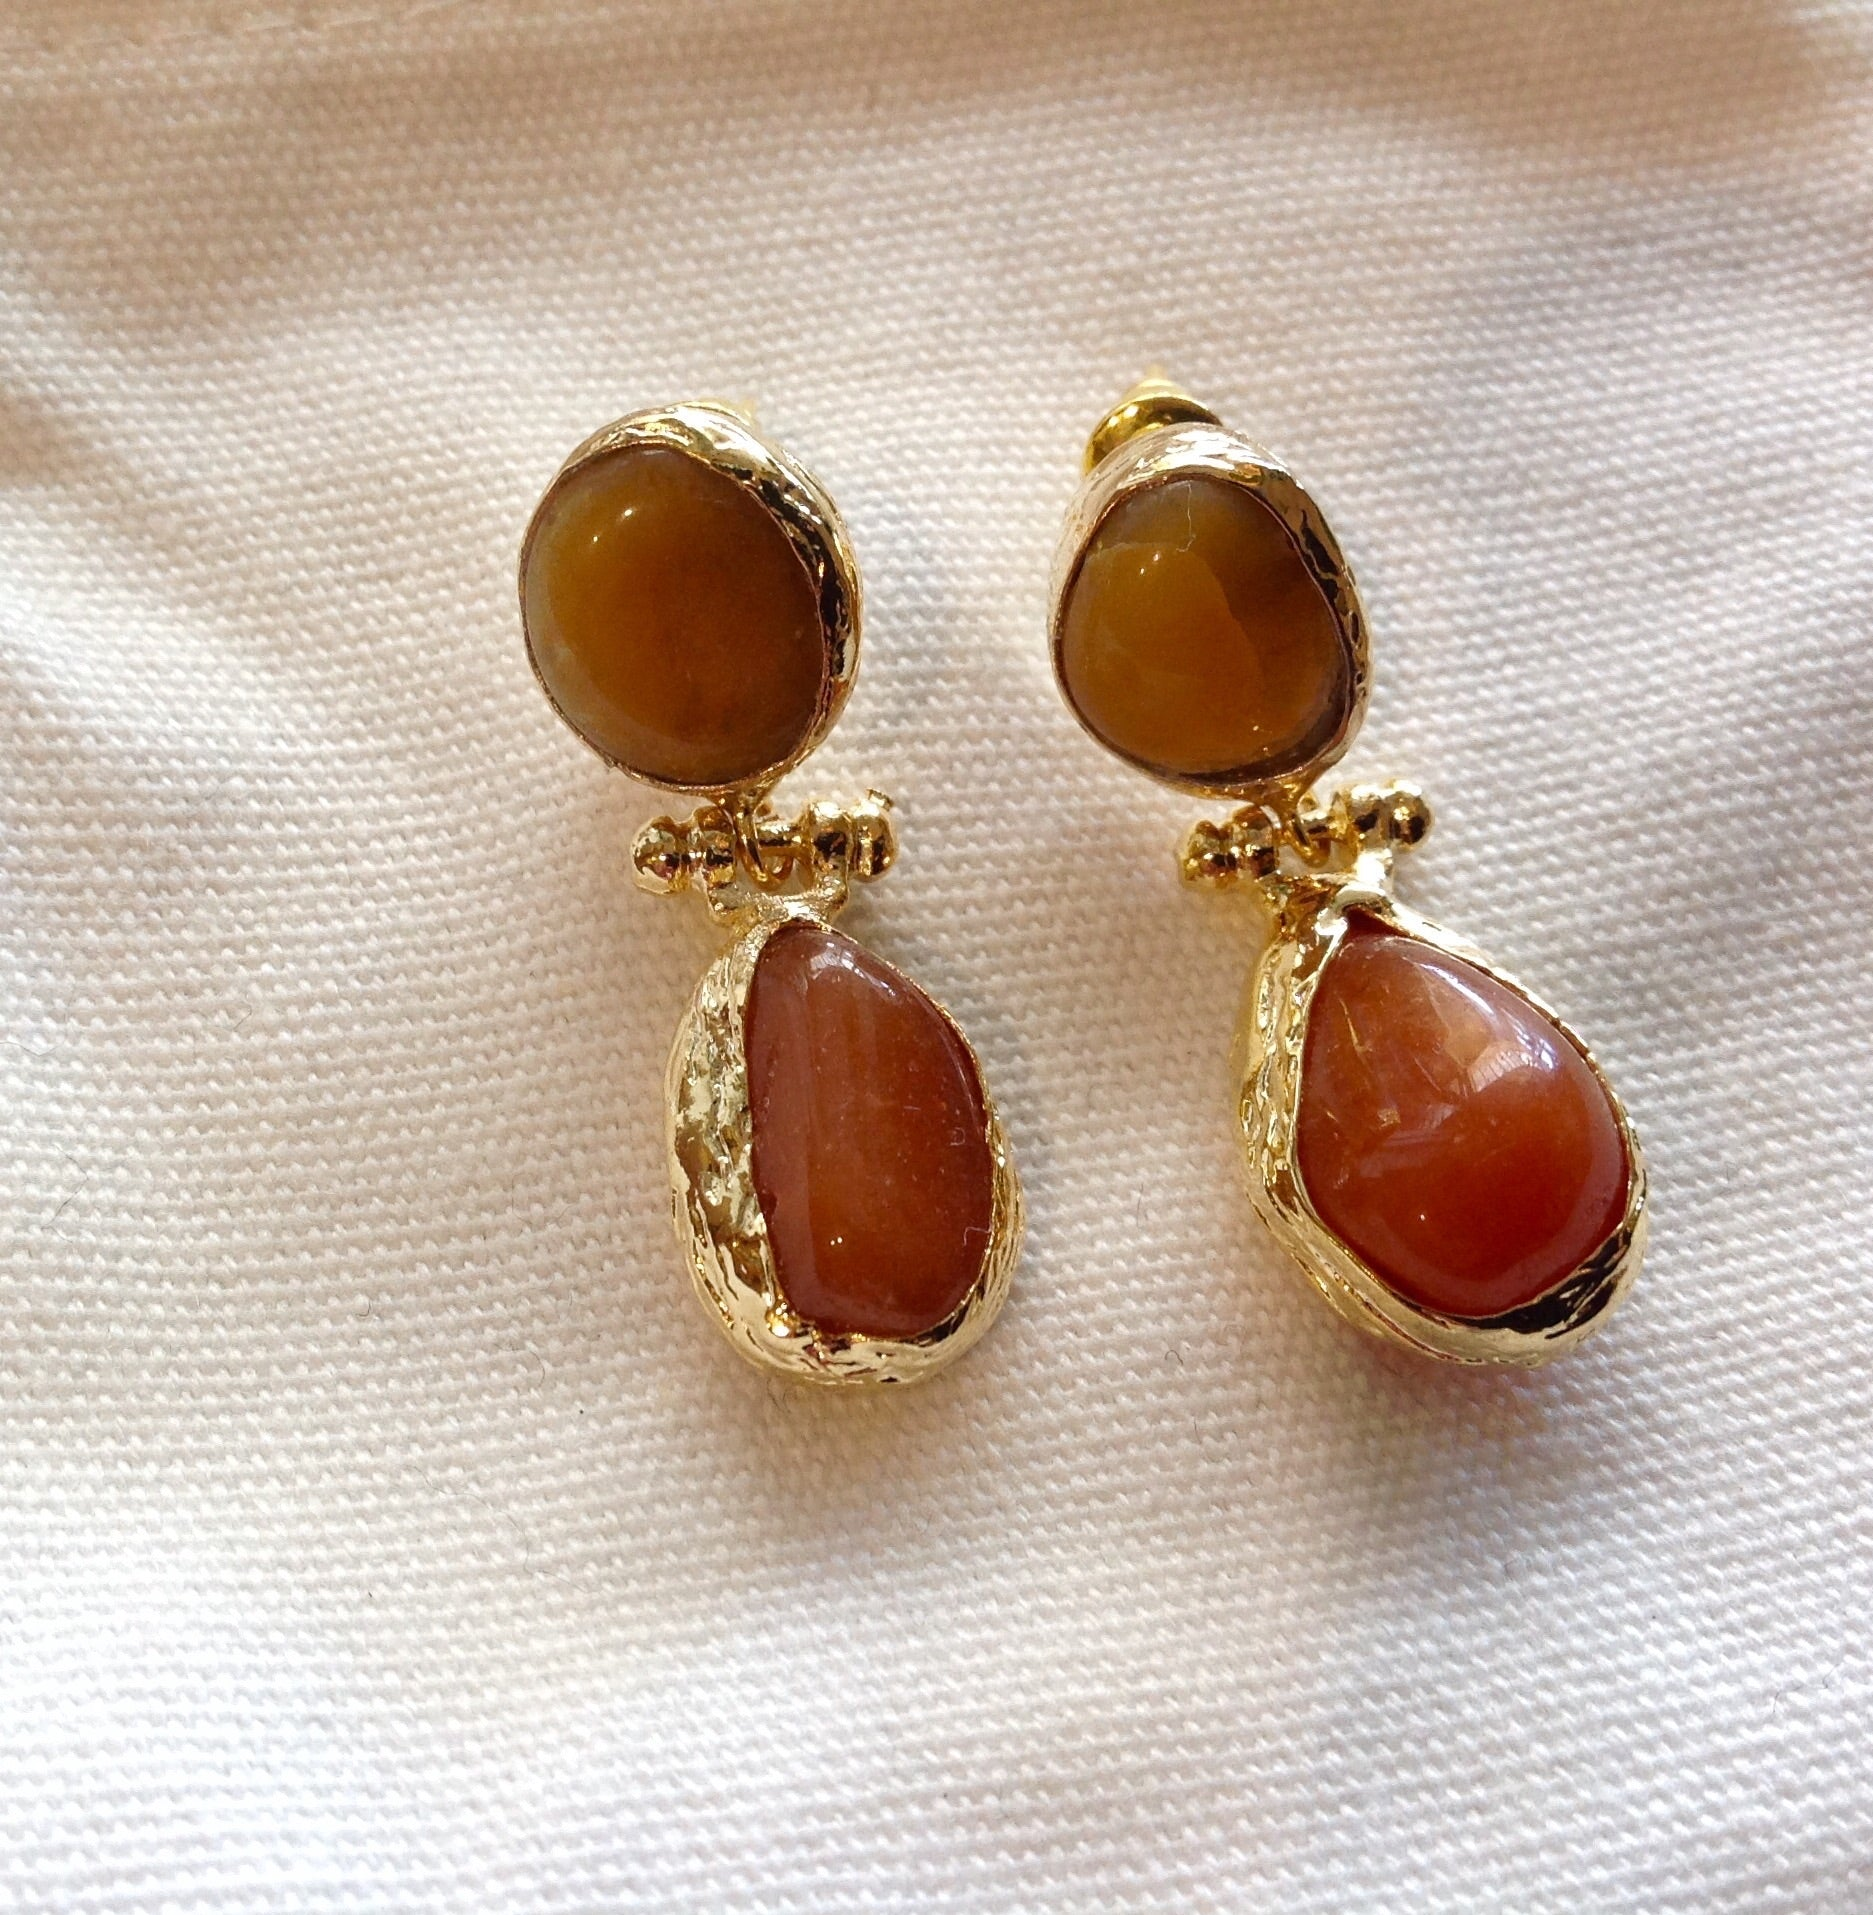 HANDMADE DOUBLE DROP EARRINGS - DOUBLE AMBER COLOURED STONE